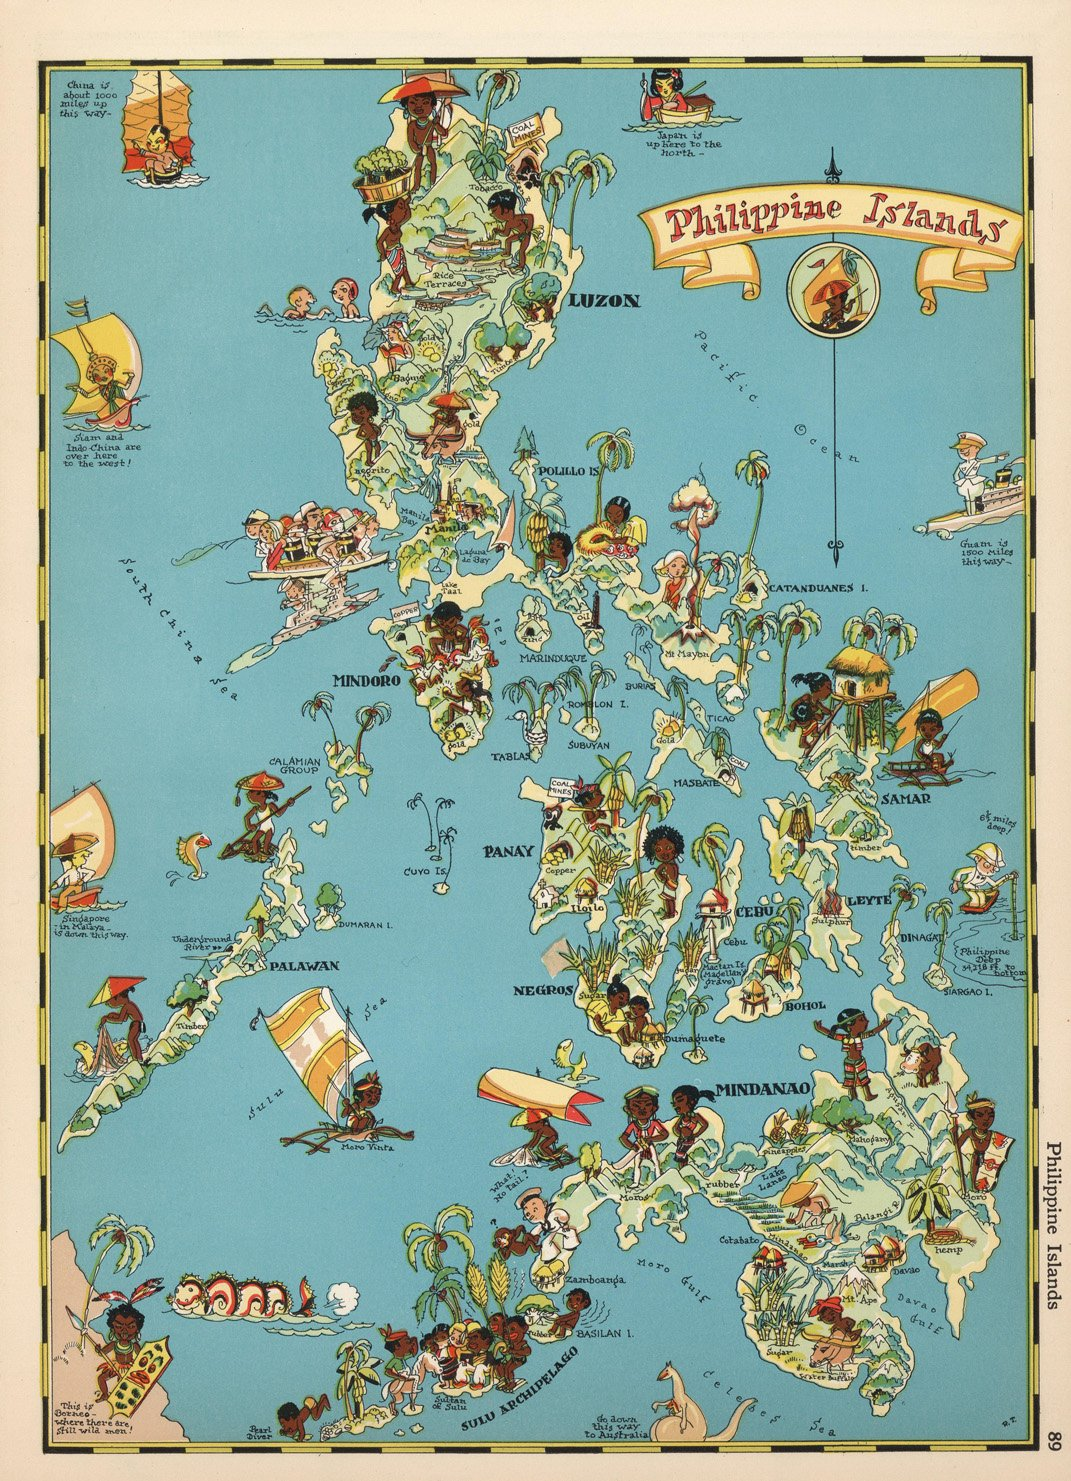 e38c16e36f427 Map Poster - Philippine Islands. - 24